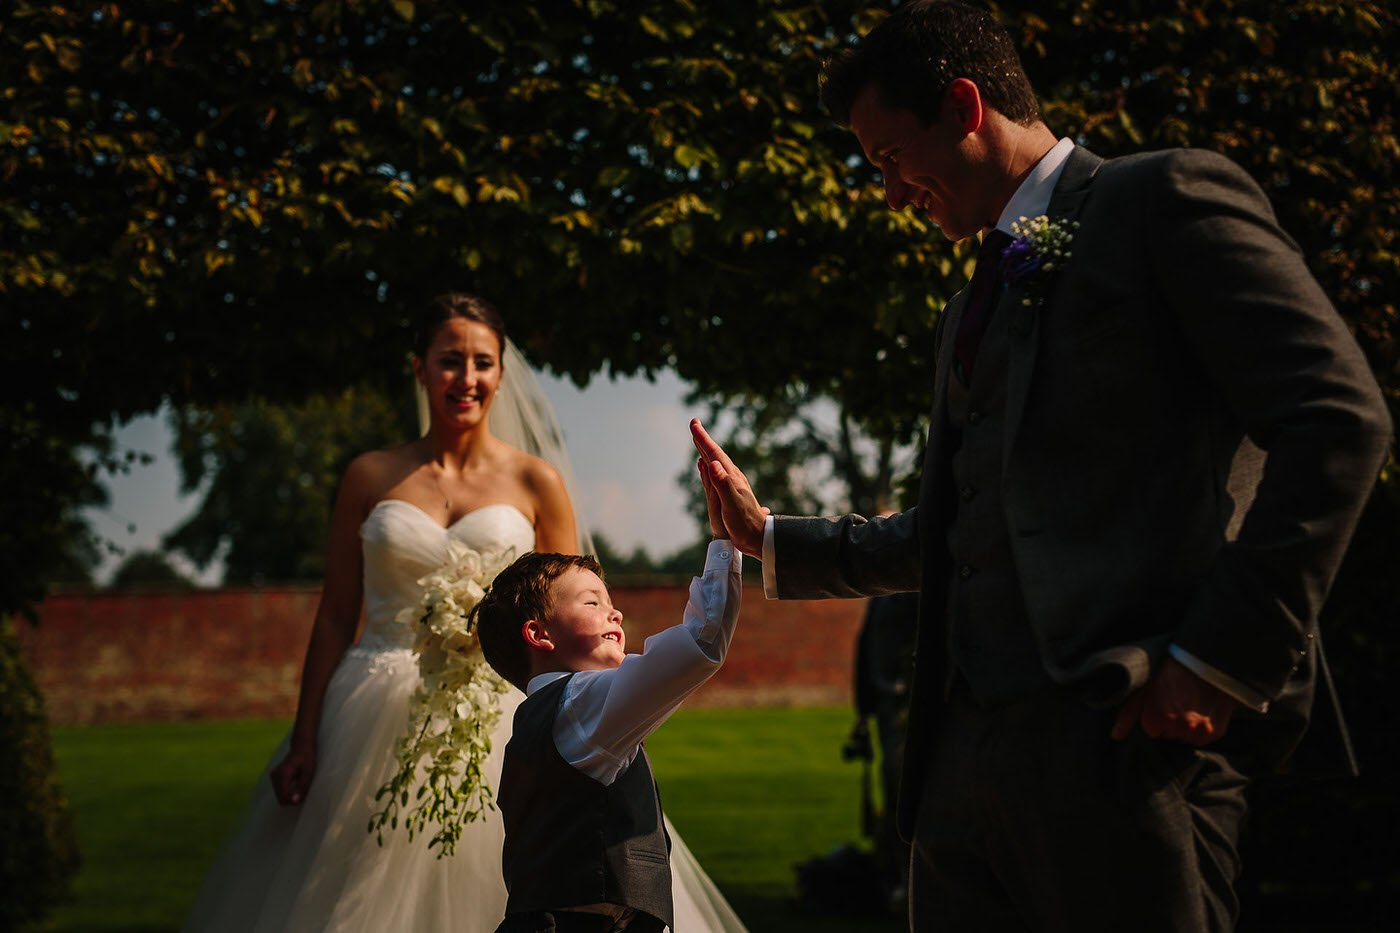 Bride and groom with young guest at combermere abbey wedding venue